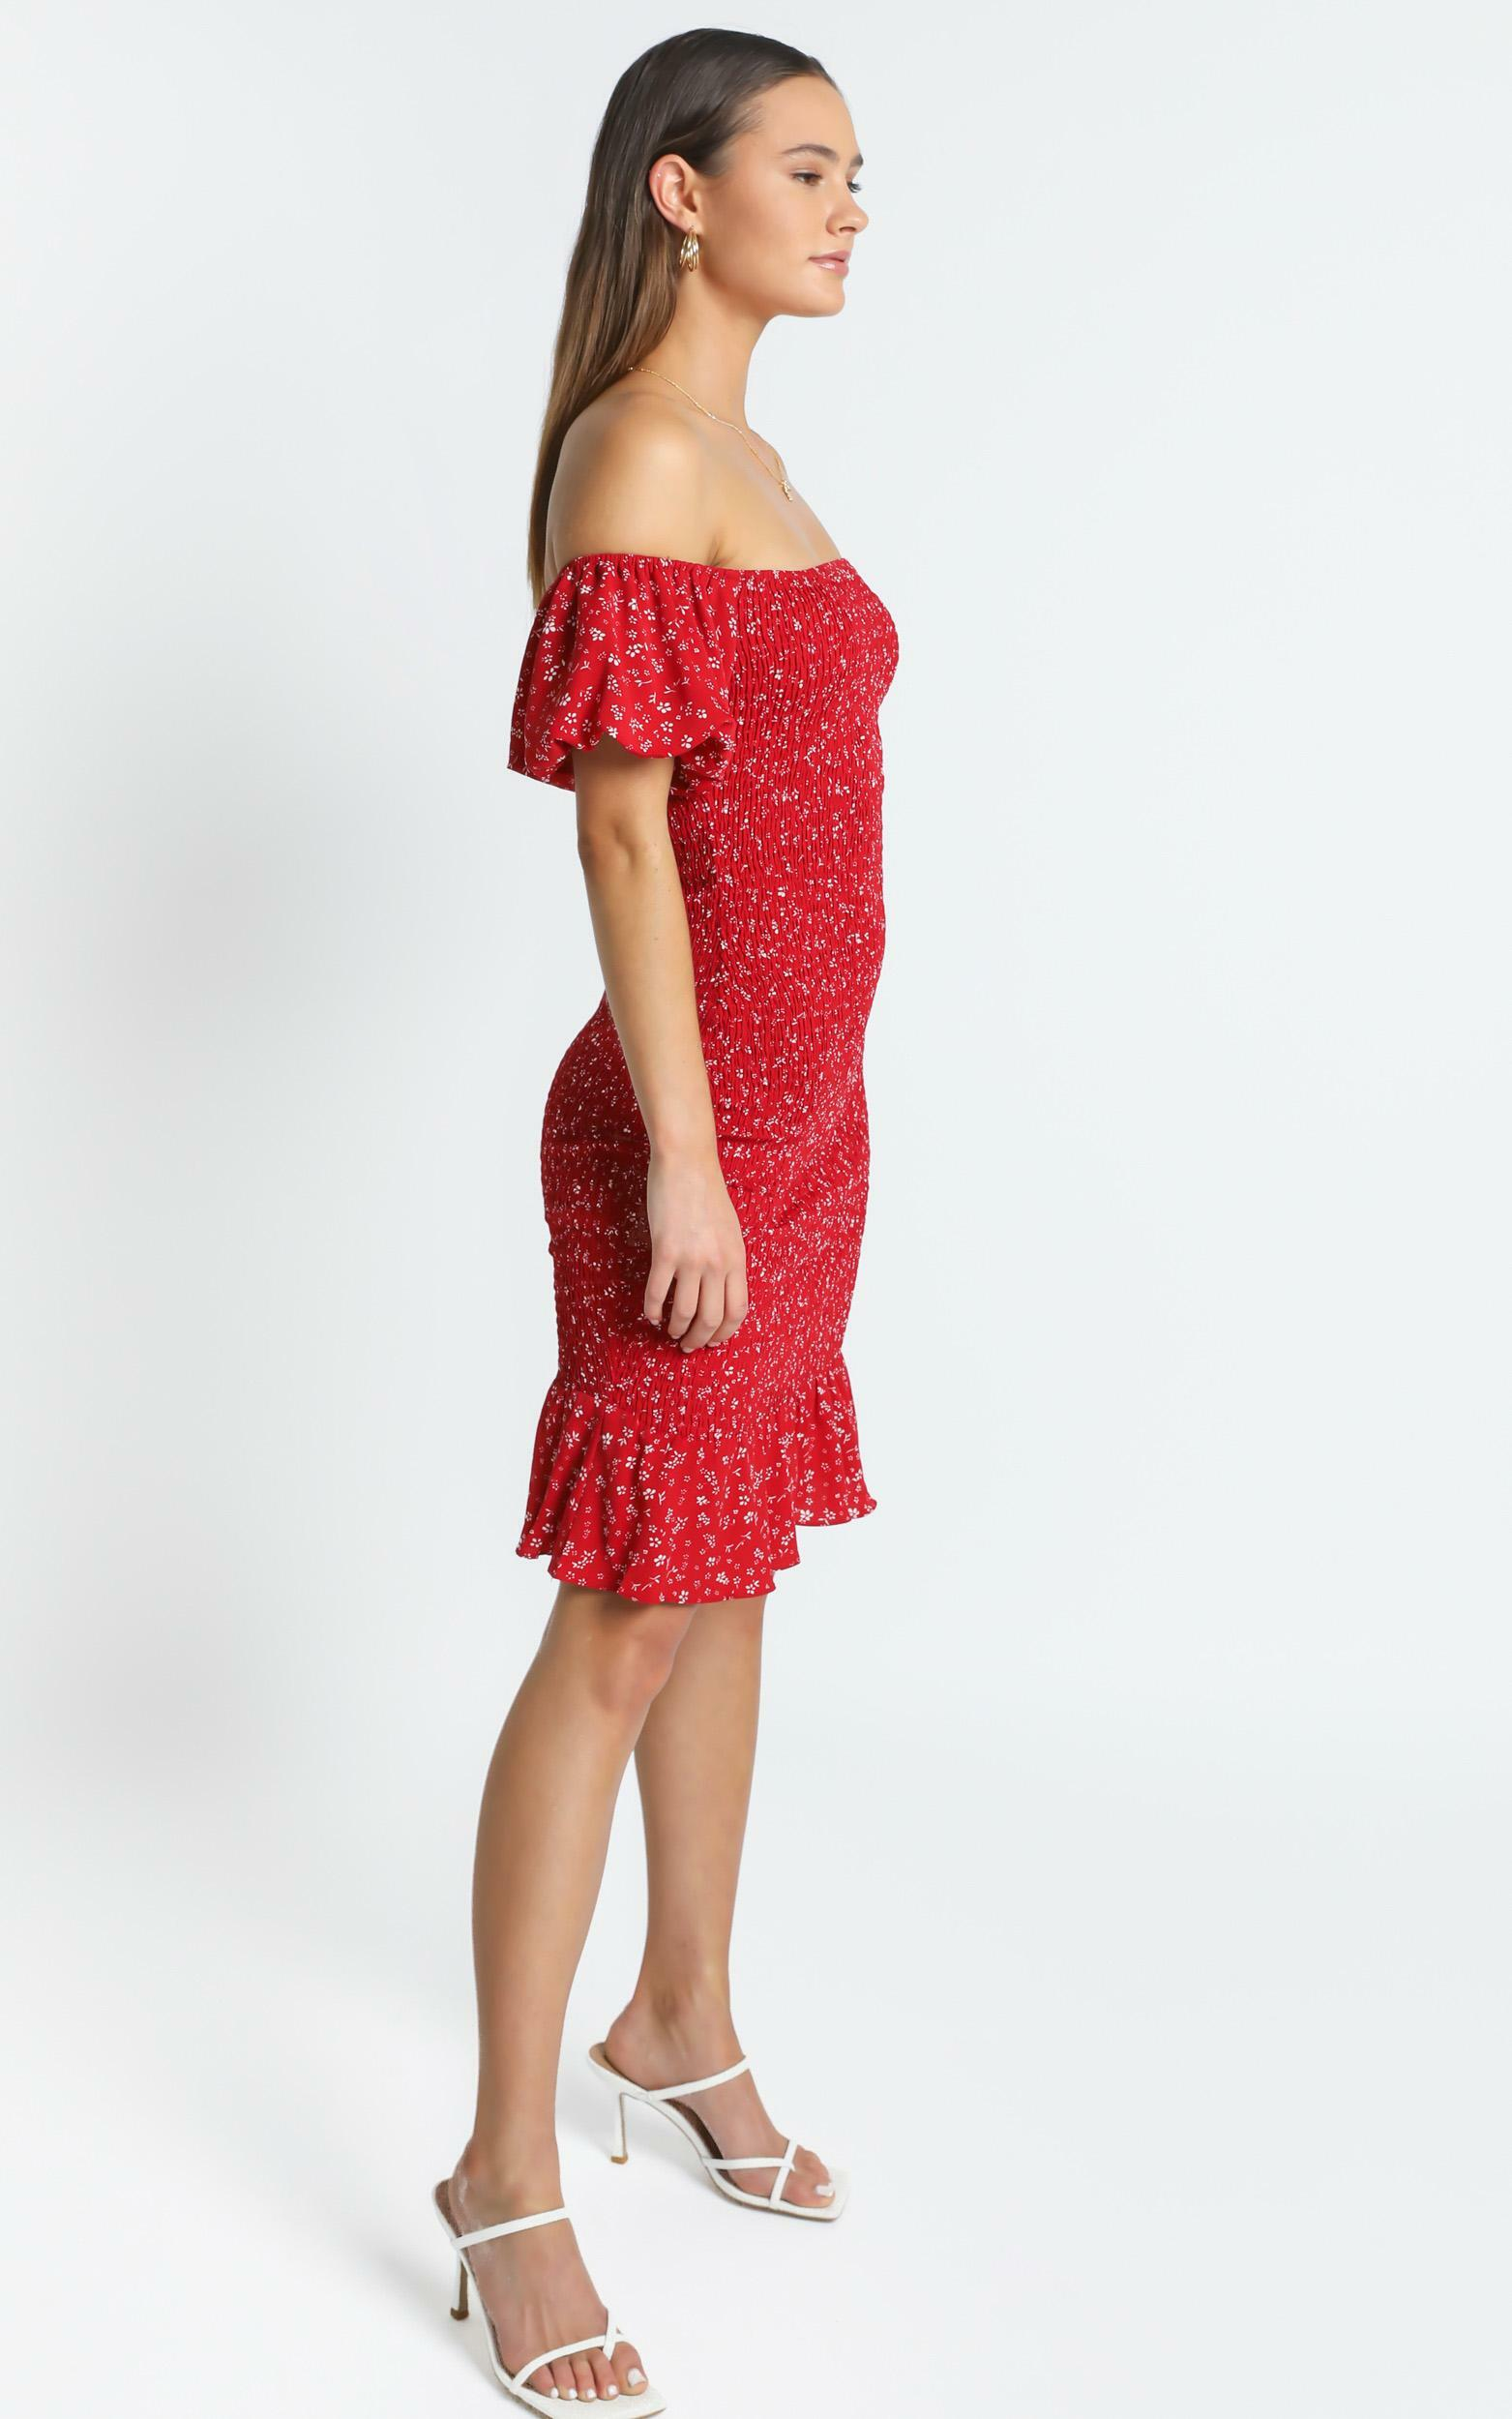 Margaux Dress in Red - 6 (XS), RED1, hi-res image number null